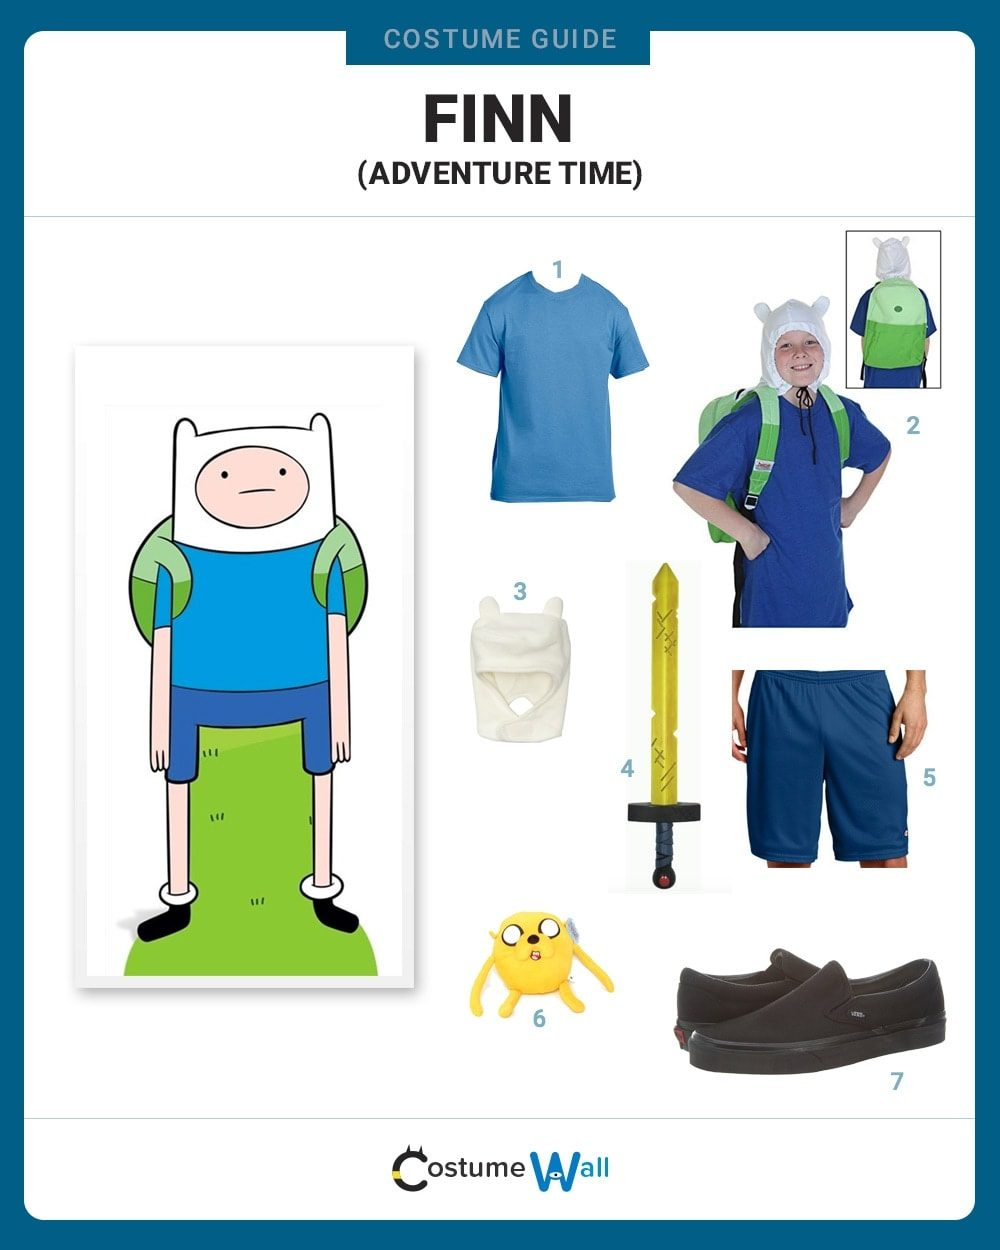 Finn the Human Costume Guide